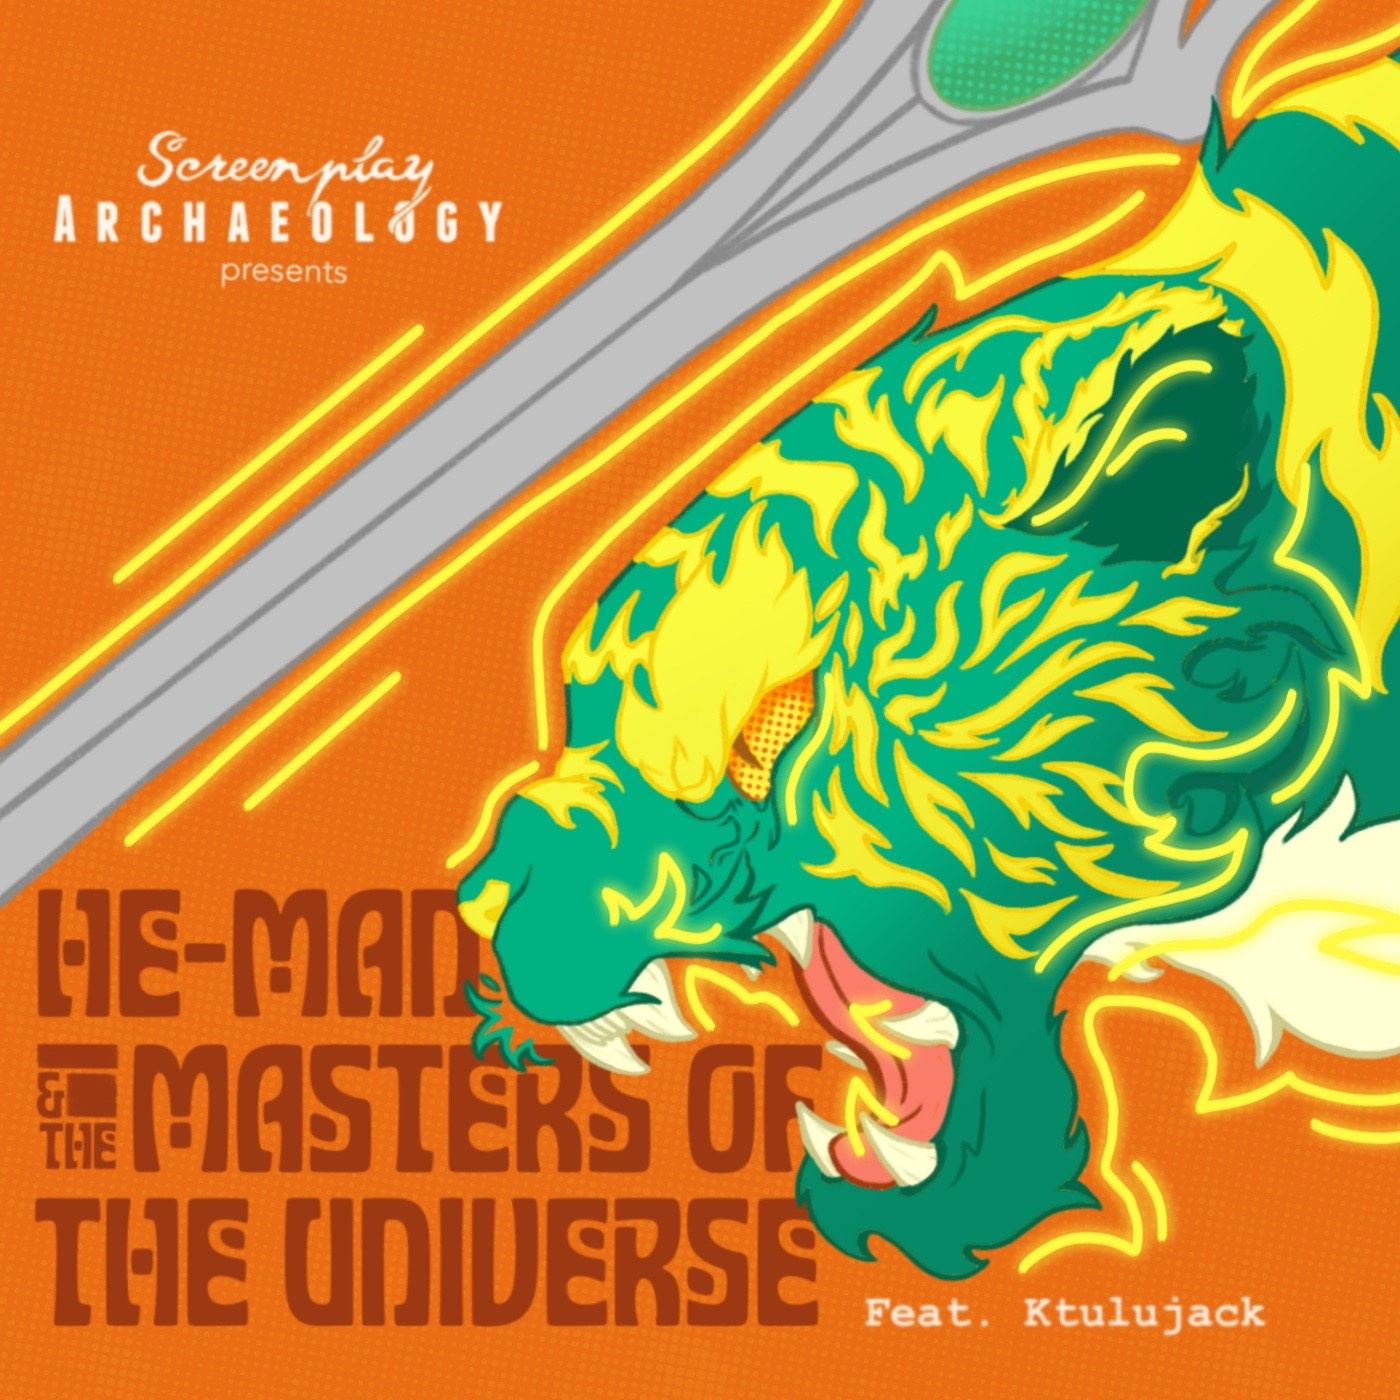 Episode 80: He-Man and the Masters of the Universe